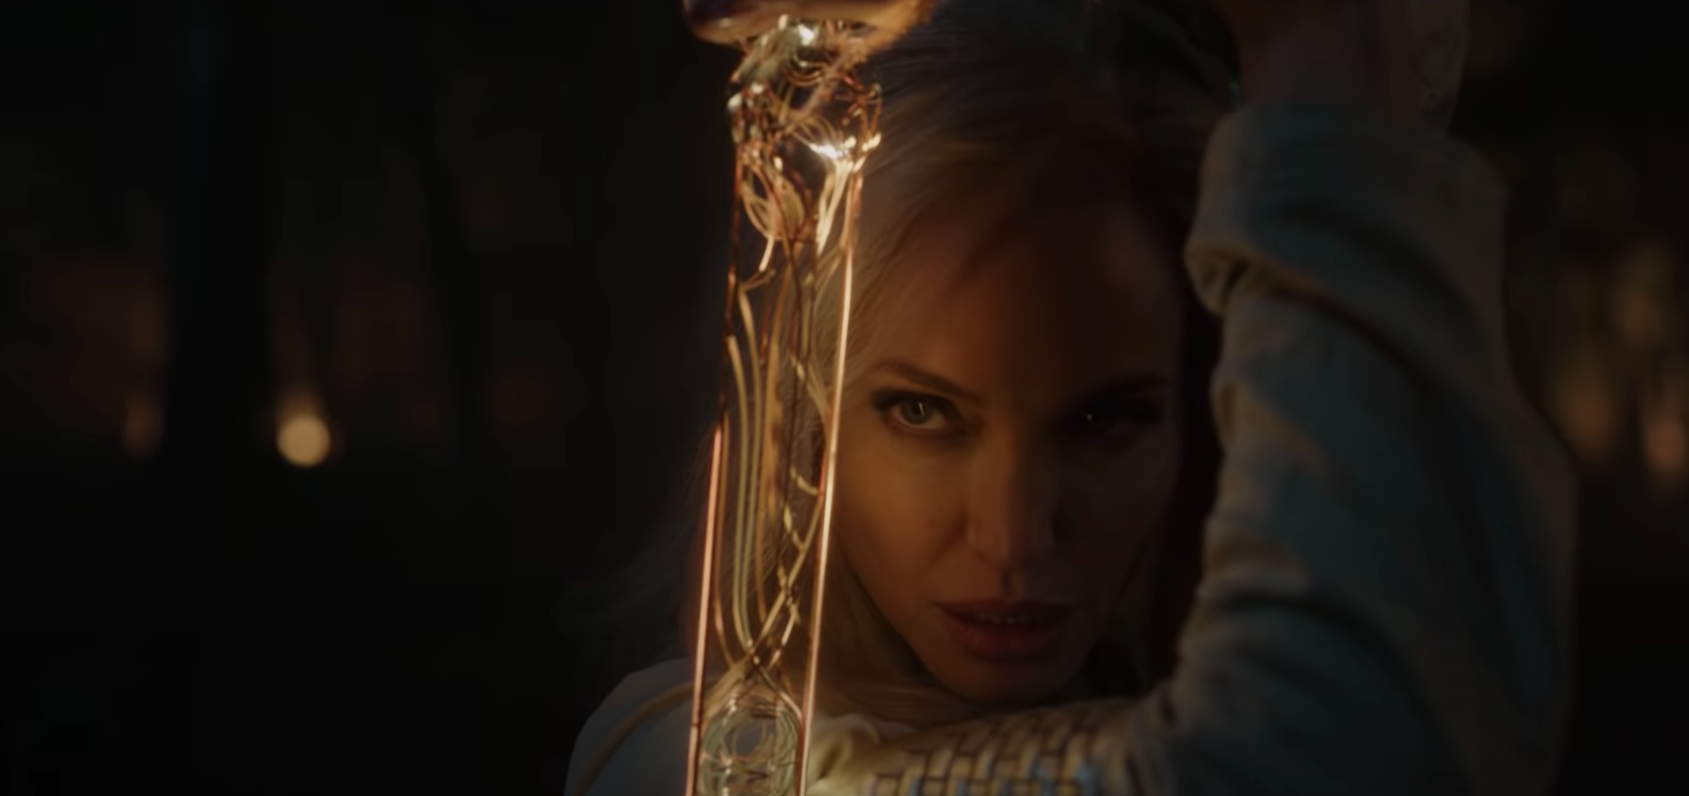 Marvel shares first look at Angelina Jolie in 'Eternals' and its upcoming superhero films